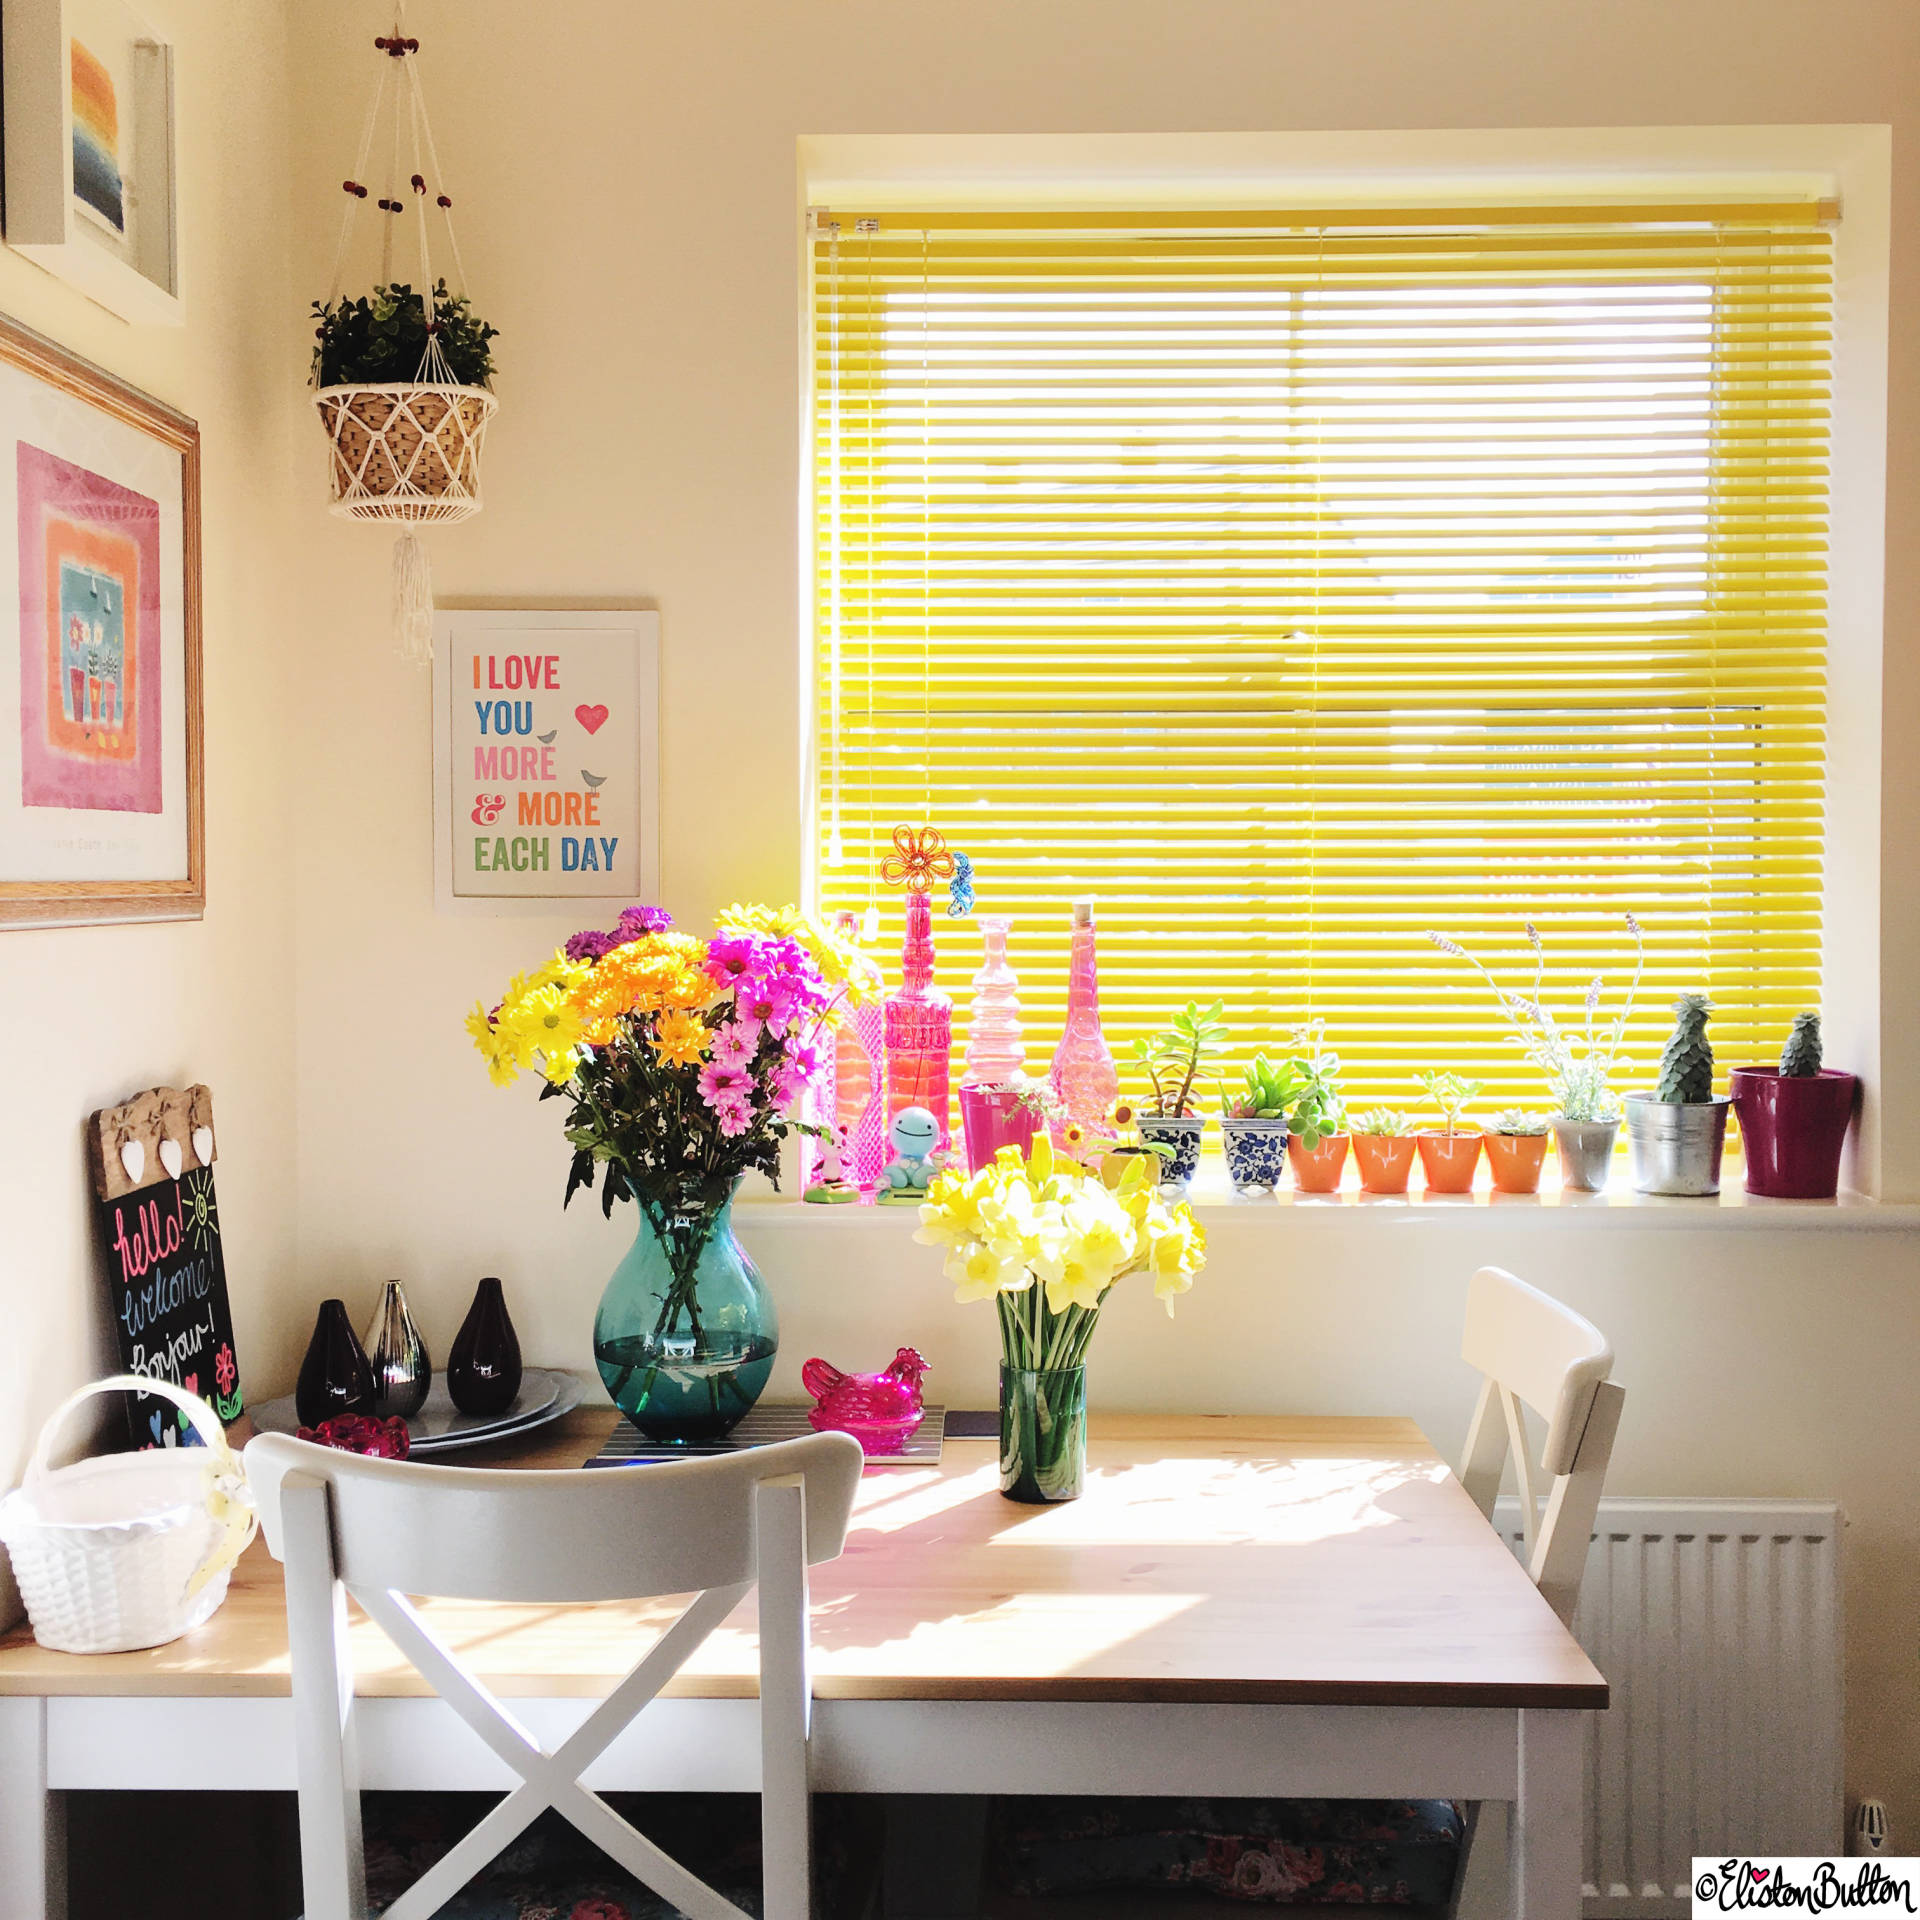 Day 28 - Happiness - Bright Colourful Kitchen Dining Area - Photo-a-Day – March 2016 at www.elistonbutton.com - Eliston Button - That Crafty Kid – Art, Design, Craft & Adventure.